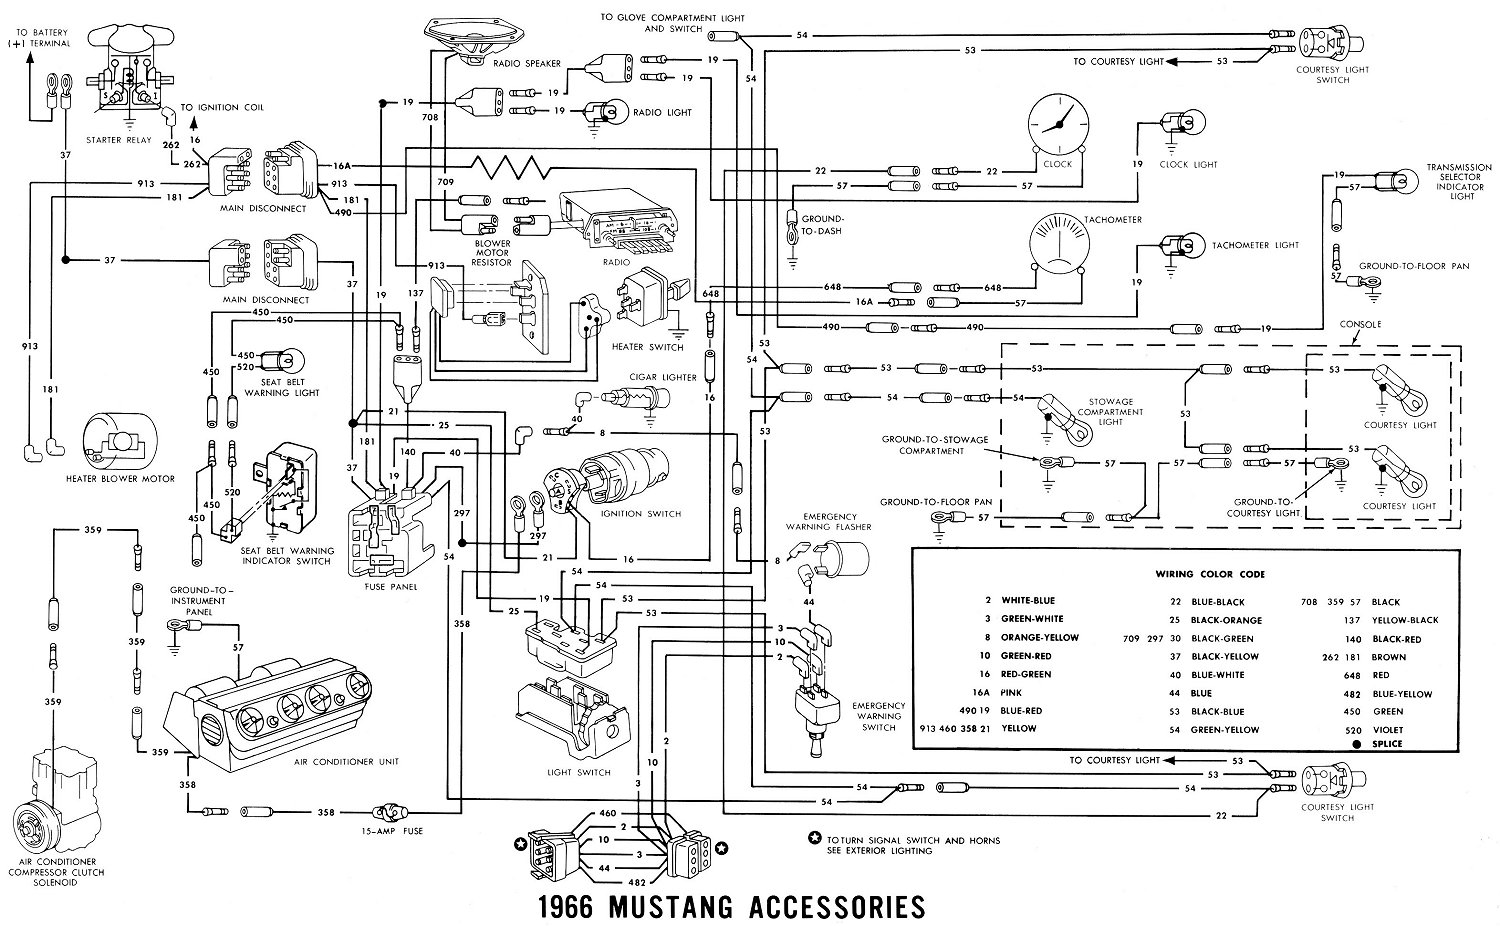 Mustang Wiring Diagrams Control Diagram Fuse Box Numbering 1966 Average Joe Restoration Rh Averagejoerestoration Com 1965